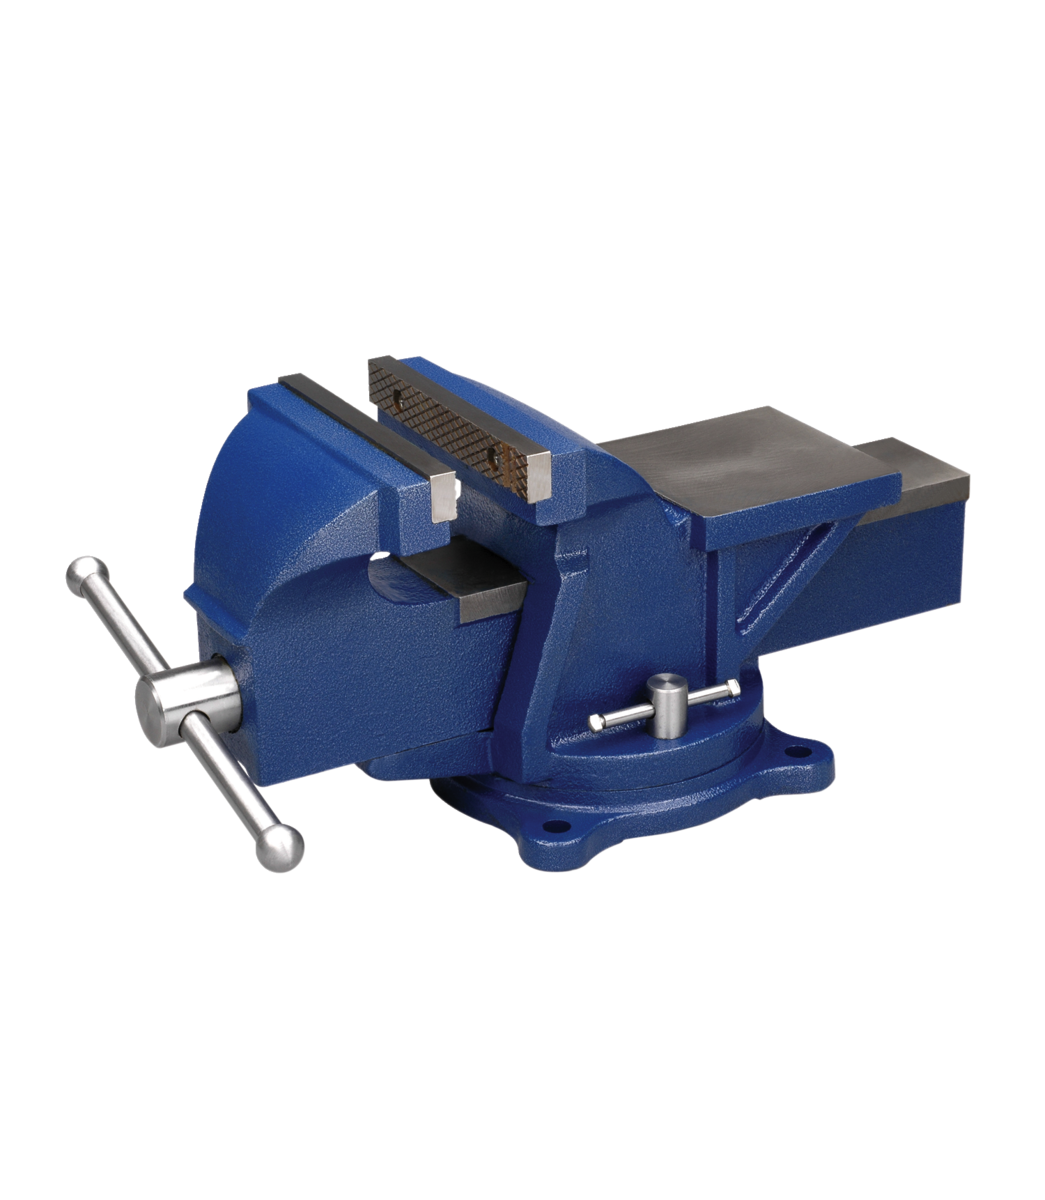 """Manual: General Purpose 5"""" Jaw Bench Vise with Swivel Base"""